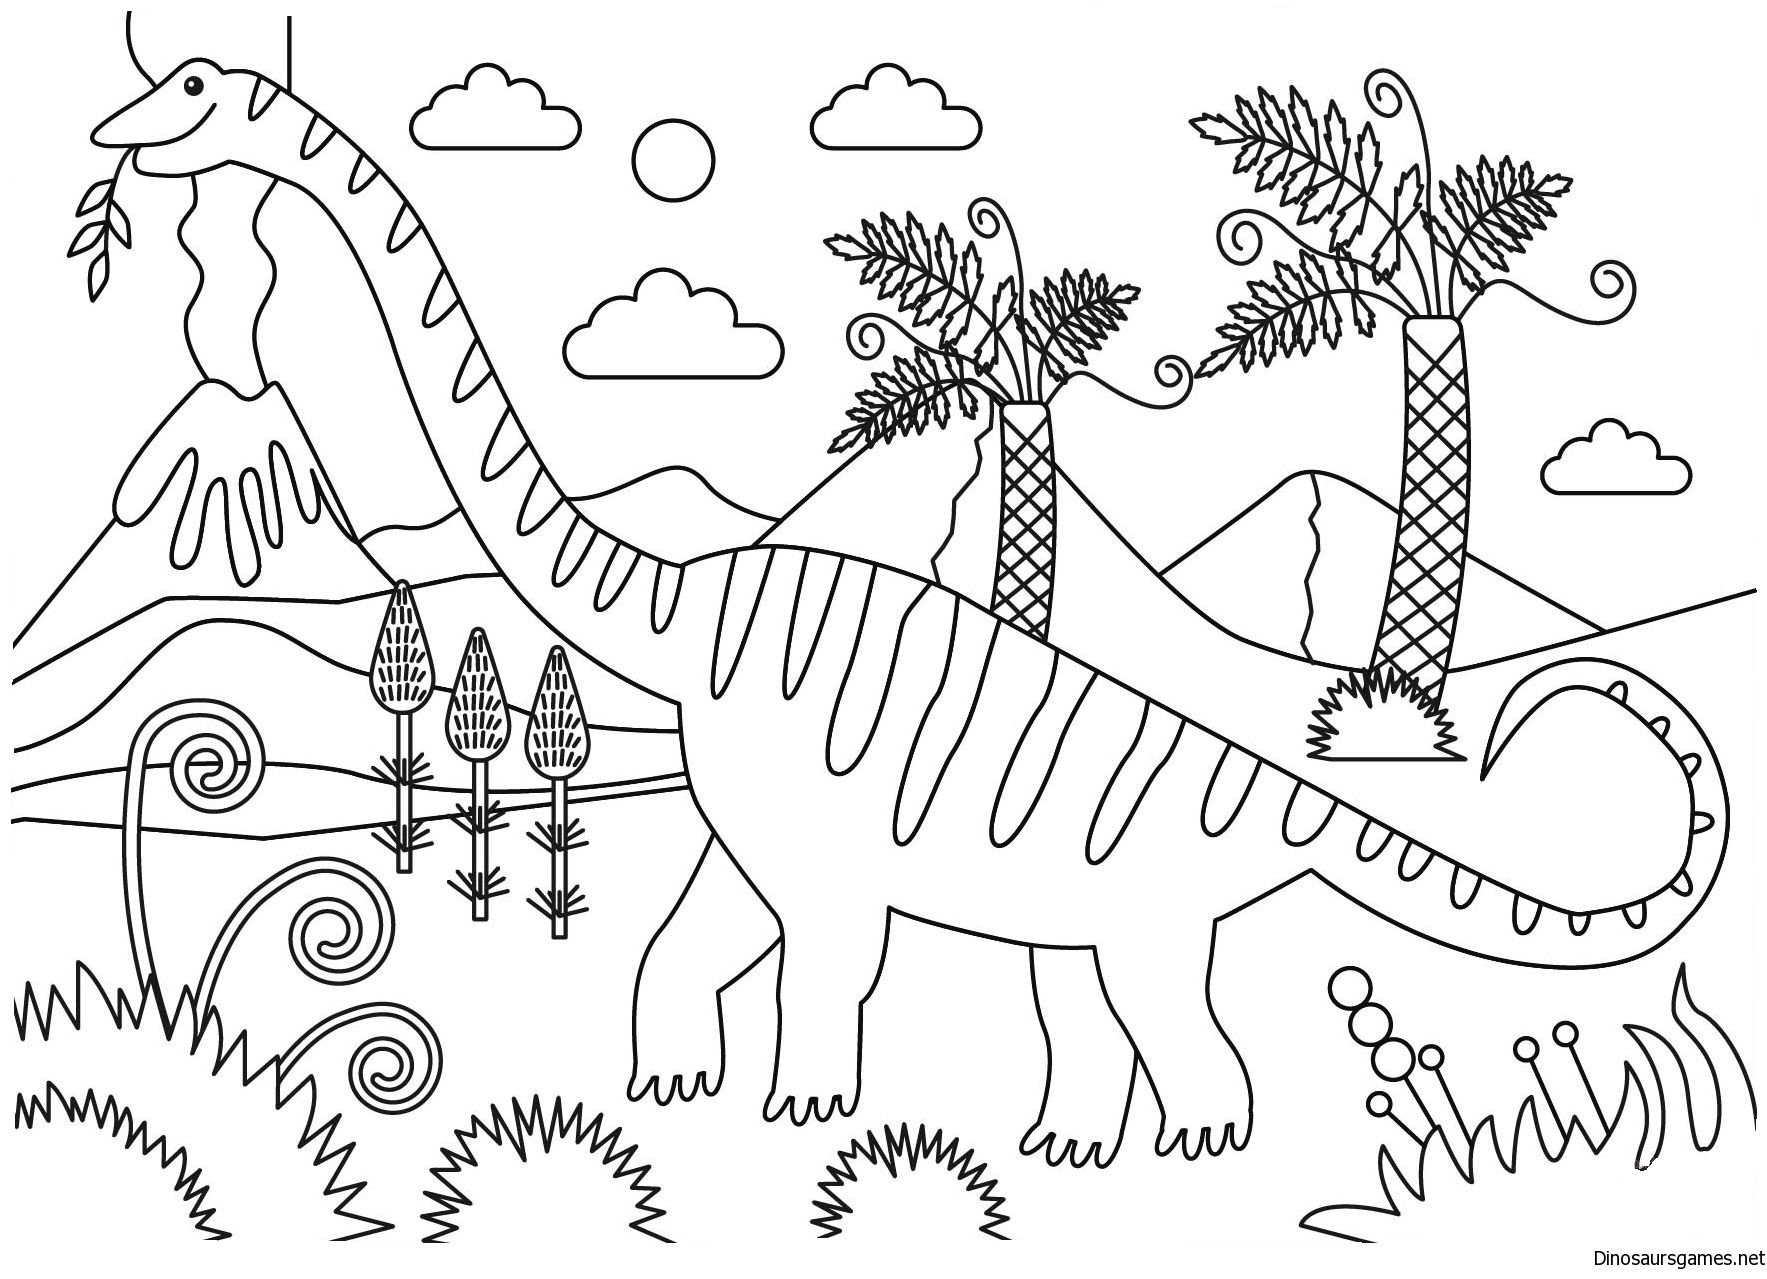 This is a great picture of Mamenchisaurus. If you love